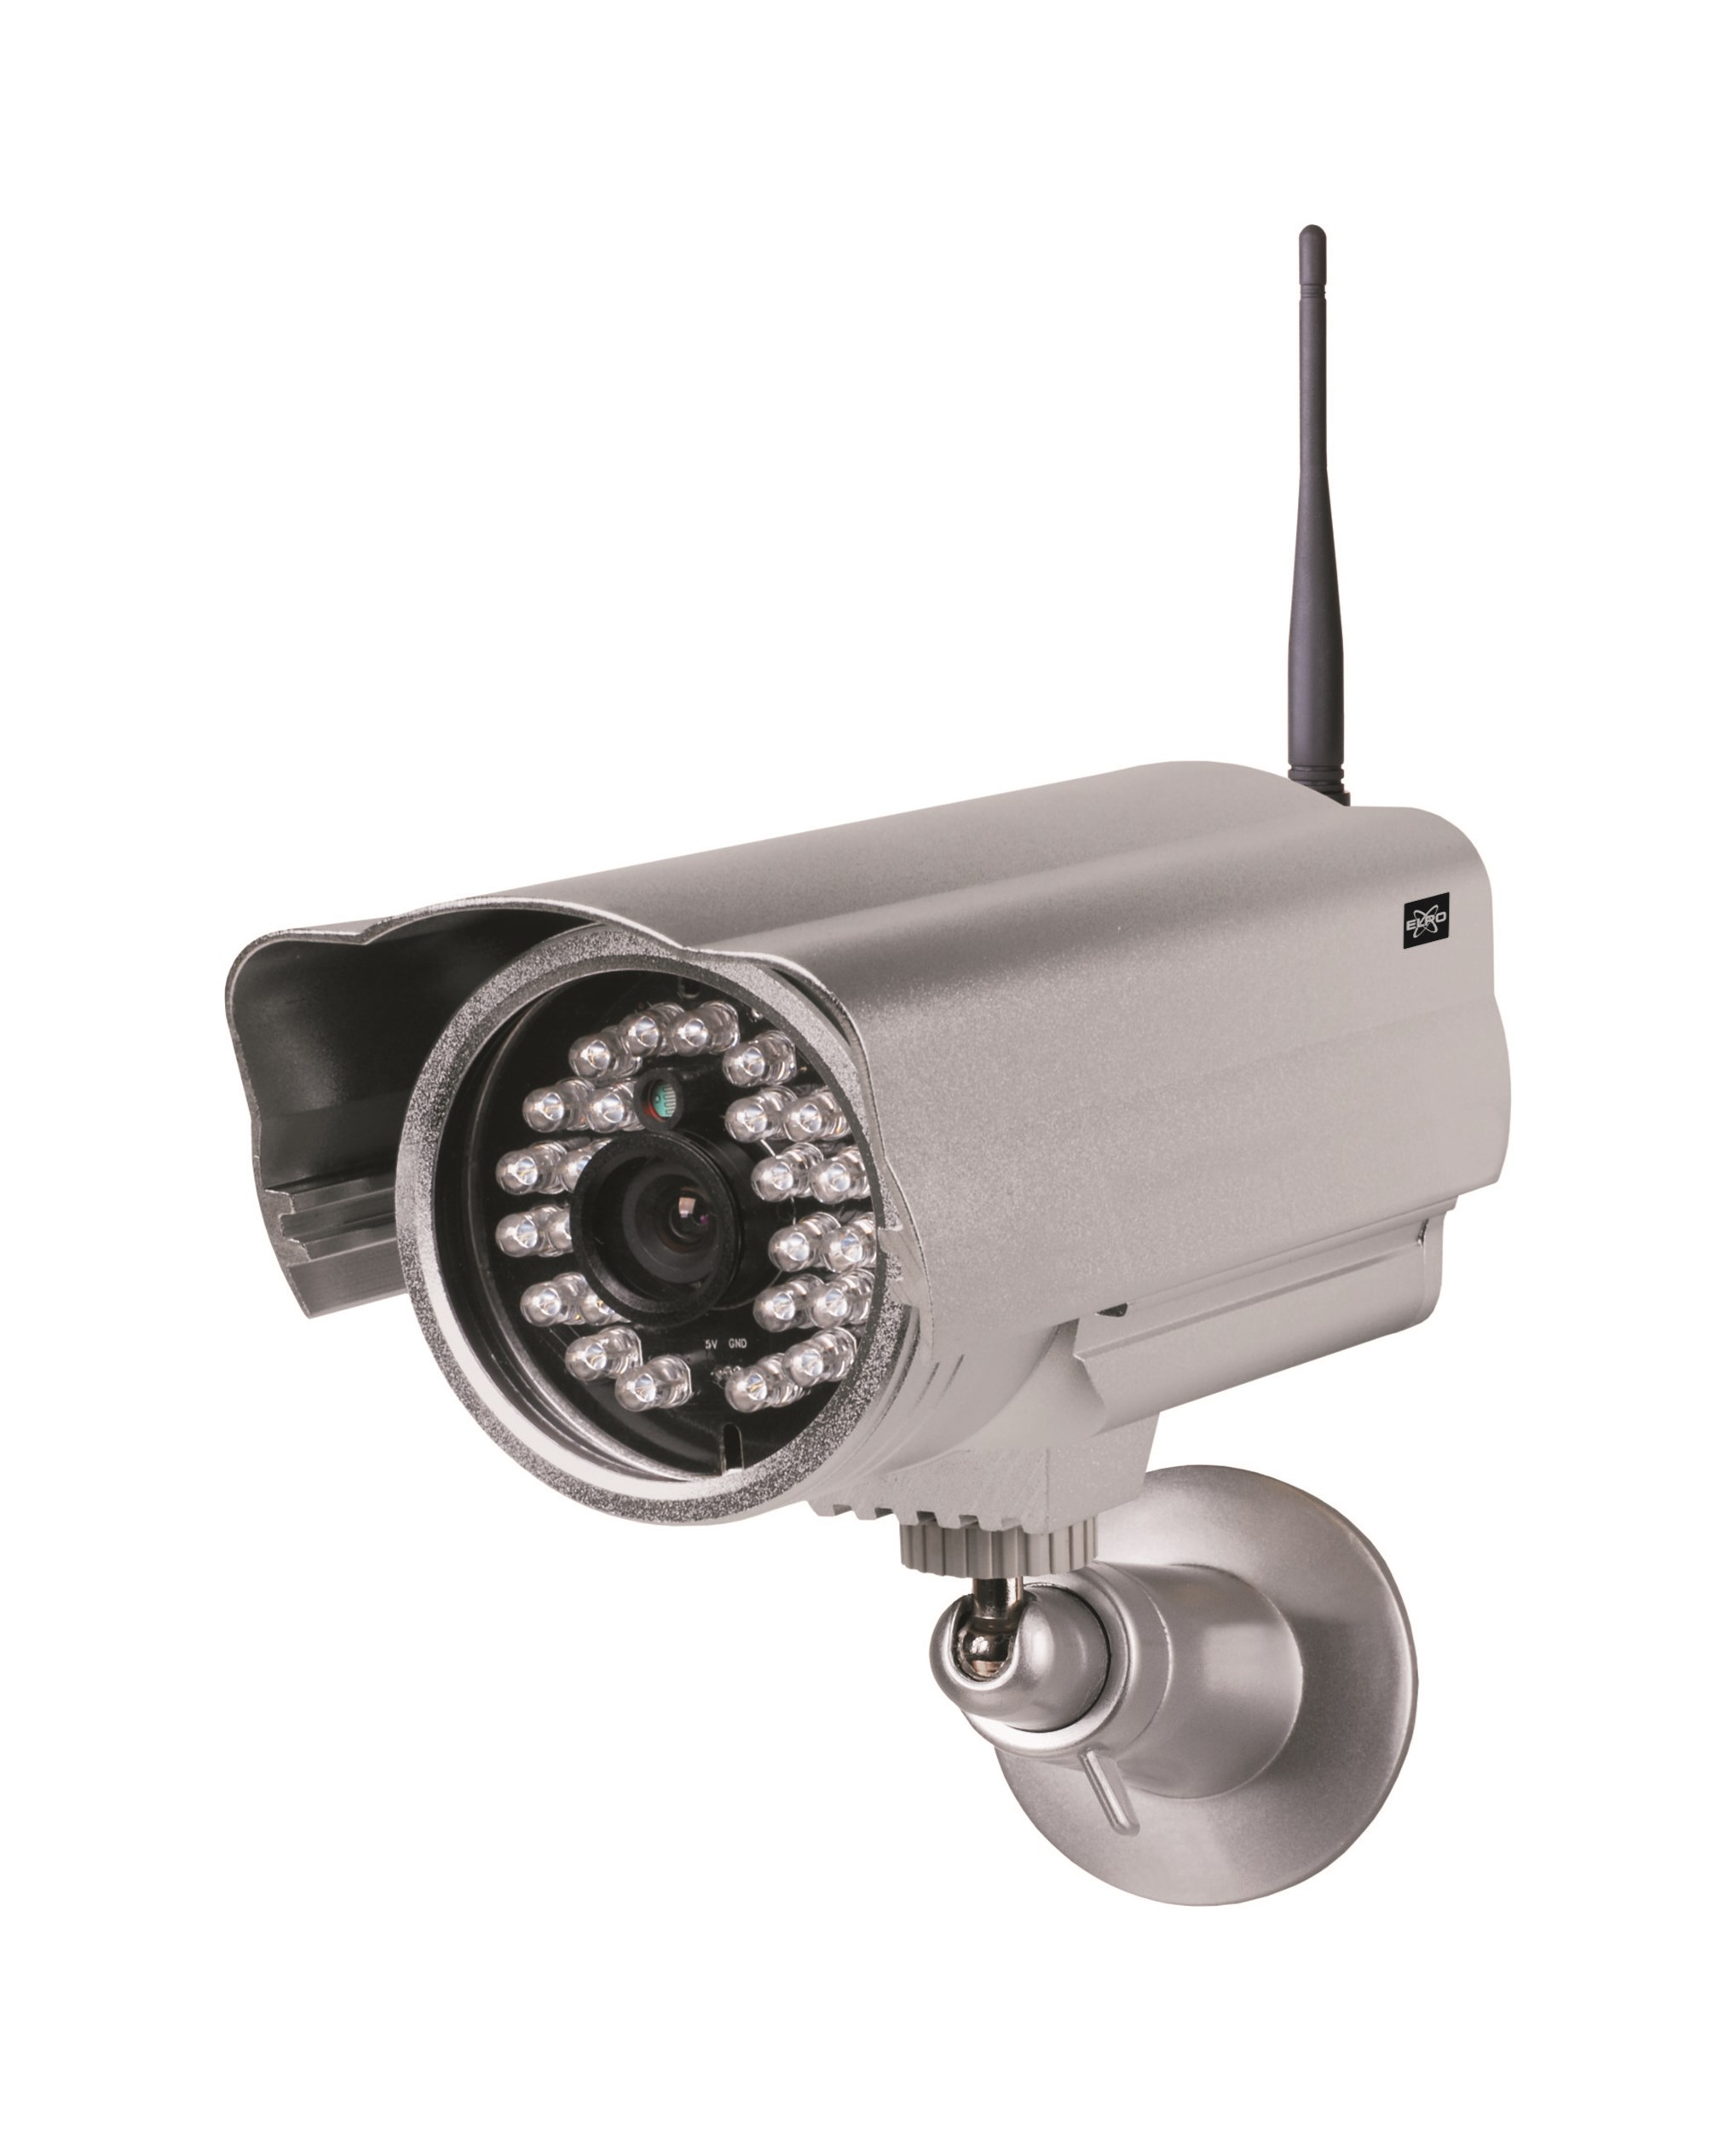 Elro wirefree ip camera c903ip security cameras for Security camera placement tool